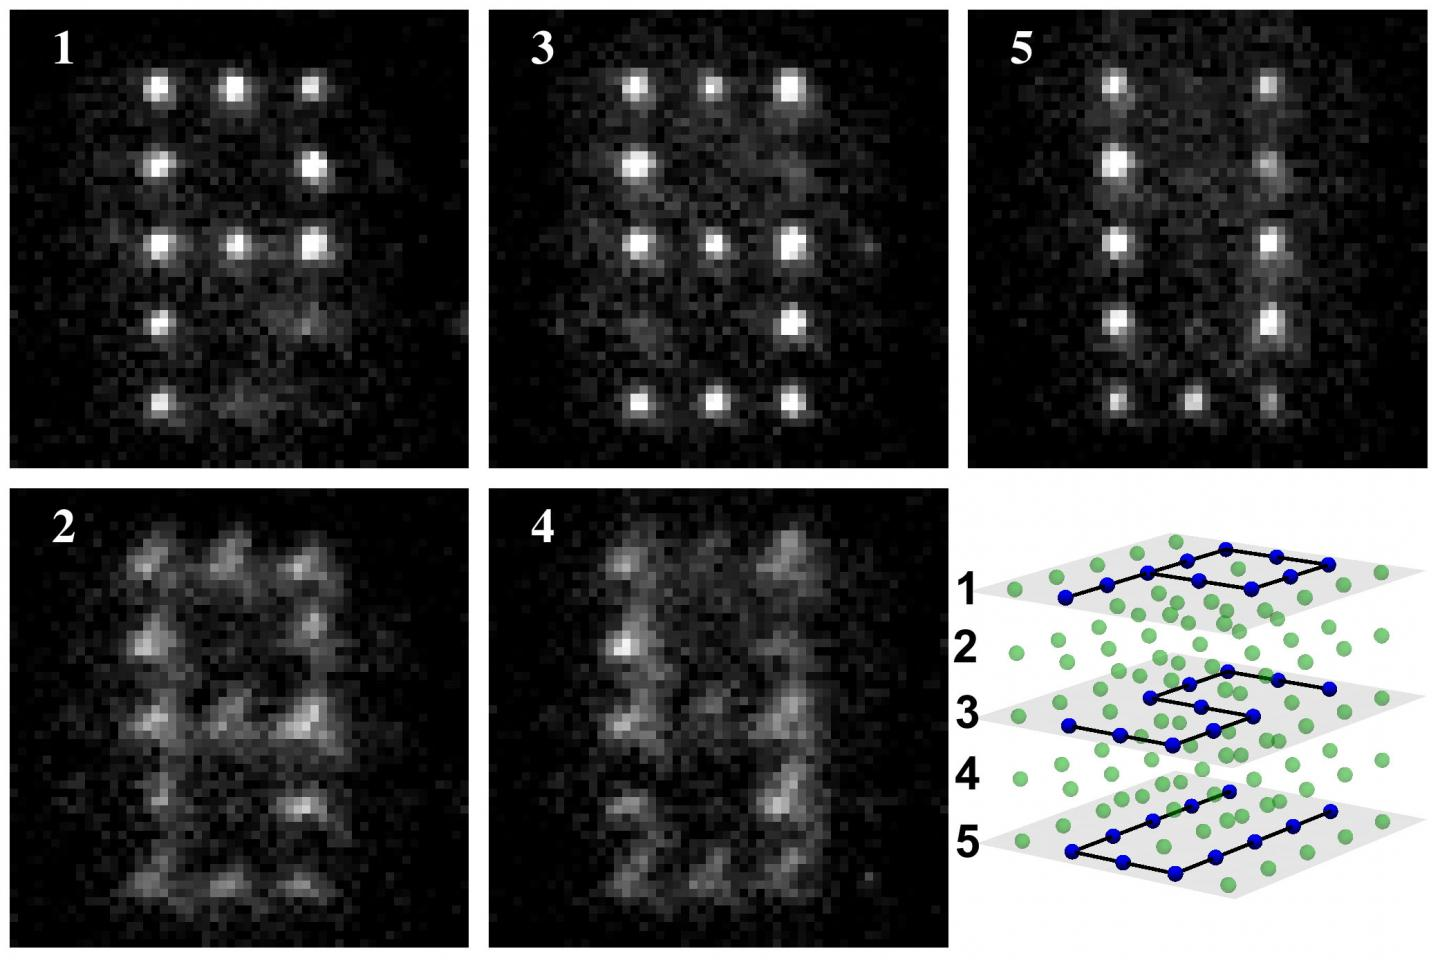 New, Better Way to Build Circuits for World's First Useful Quantum Computers